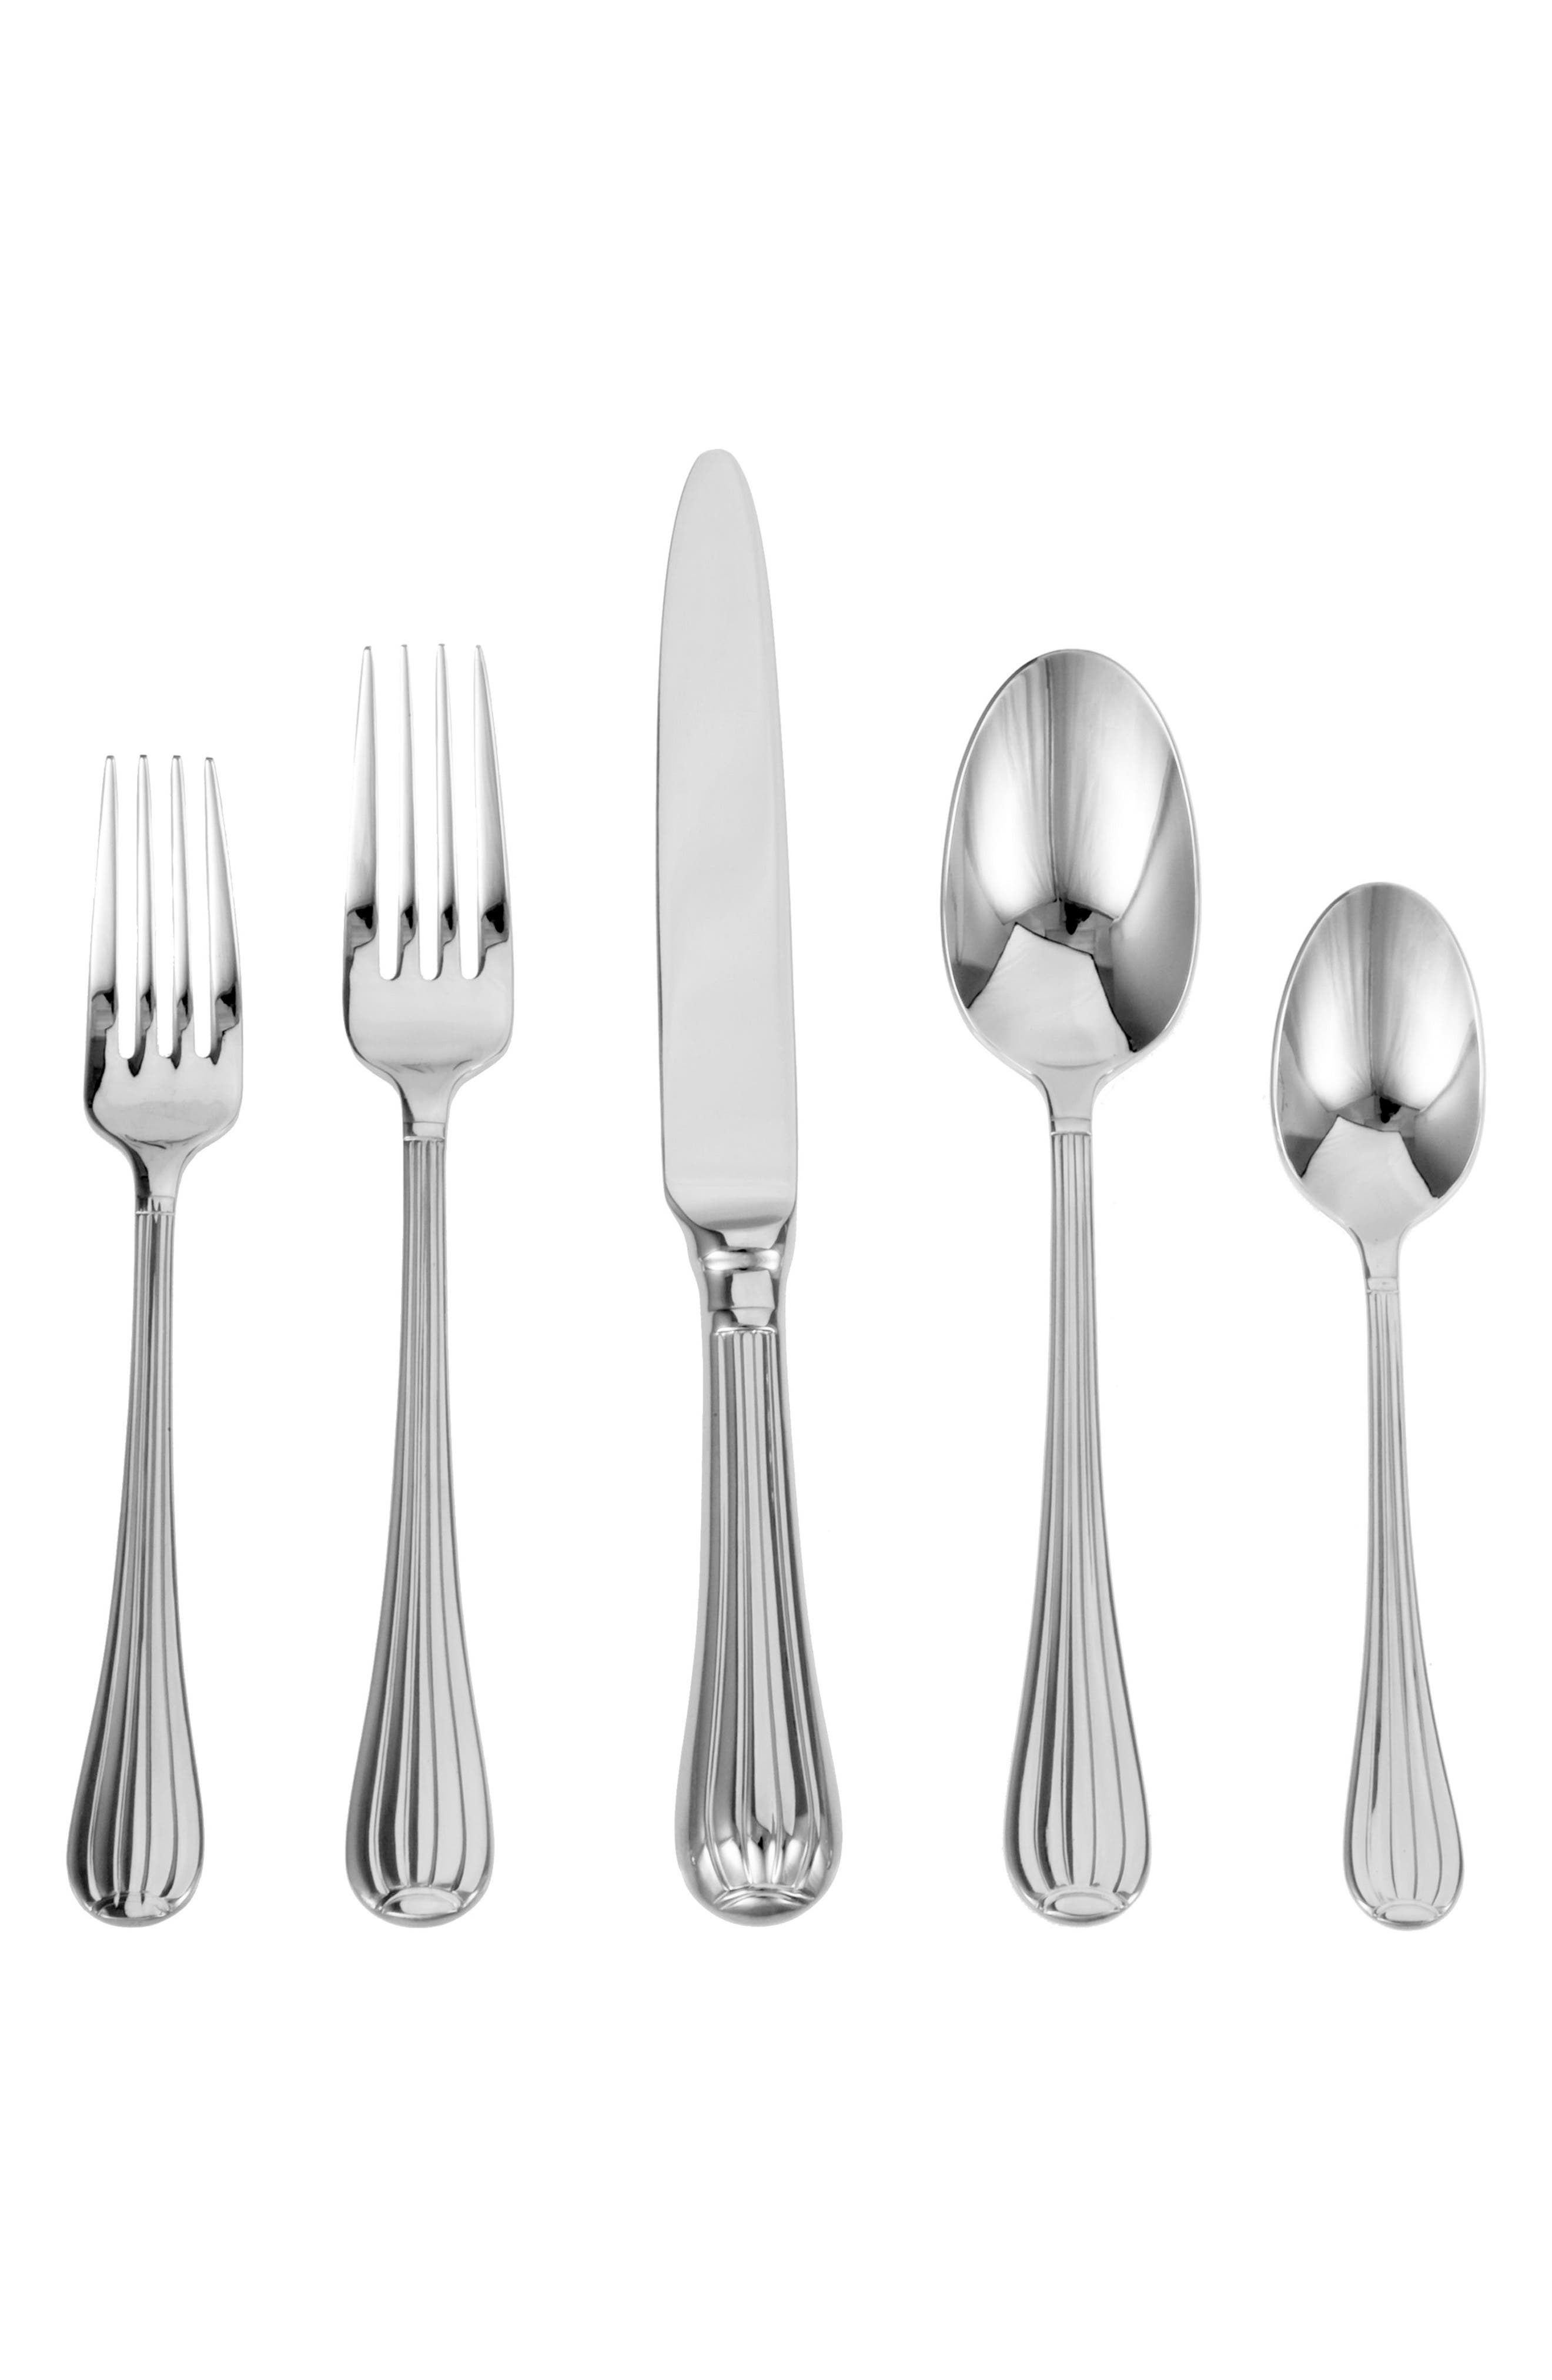 Argentieri Meridiani 45-Piece Stainless Steel Flatware Set,                             Main thumbnail 1, color,                             040